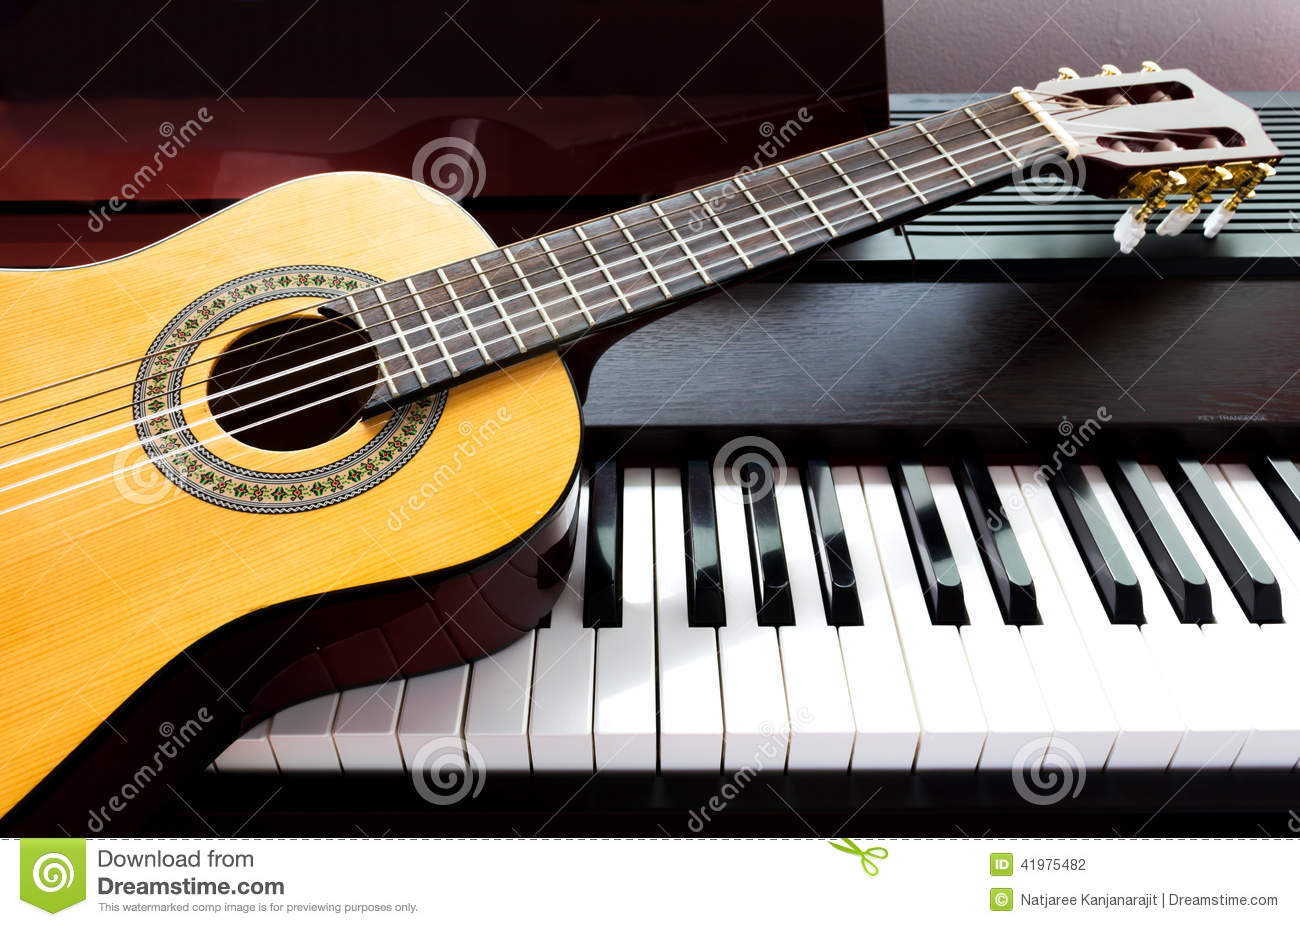 Guitar And Piano Stock Photo - Image: 41975482